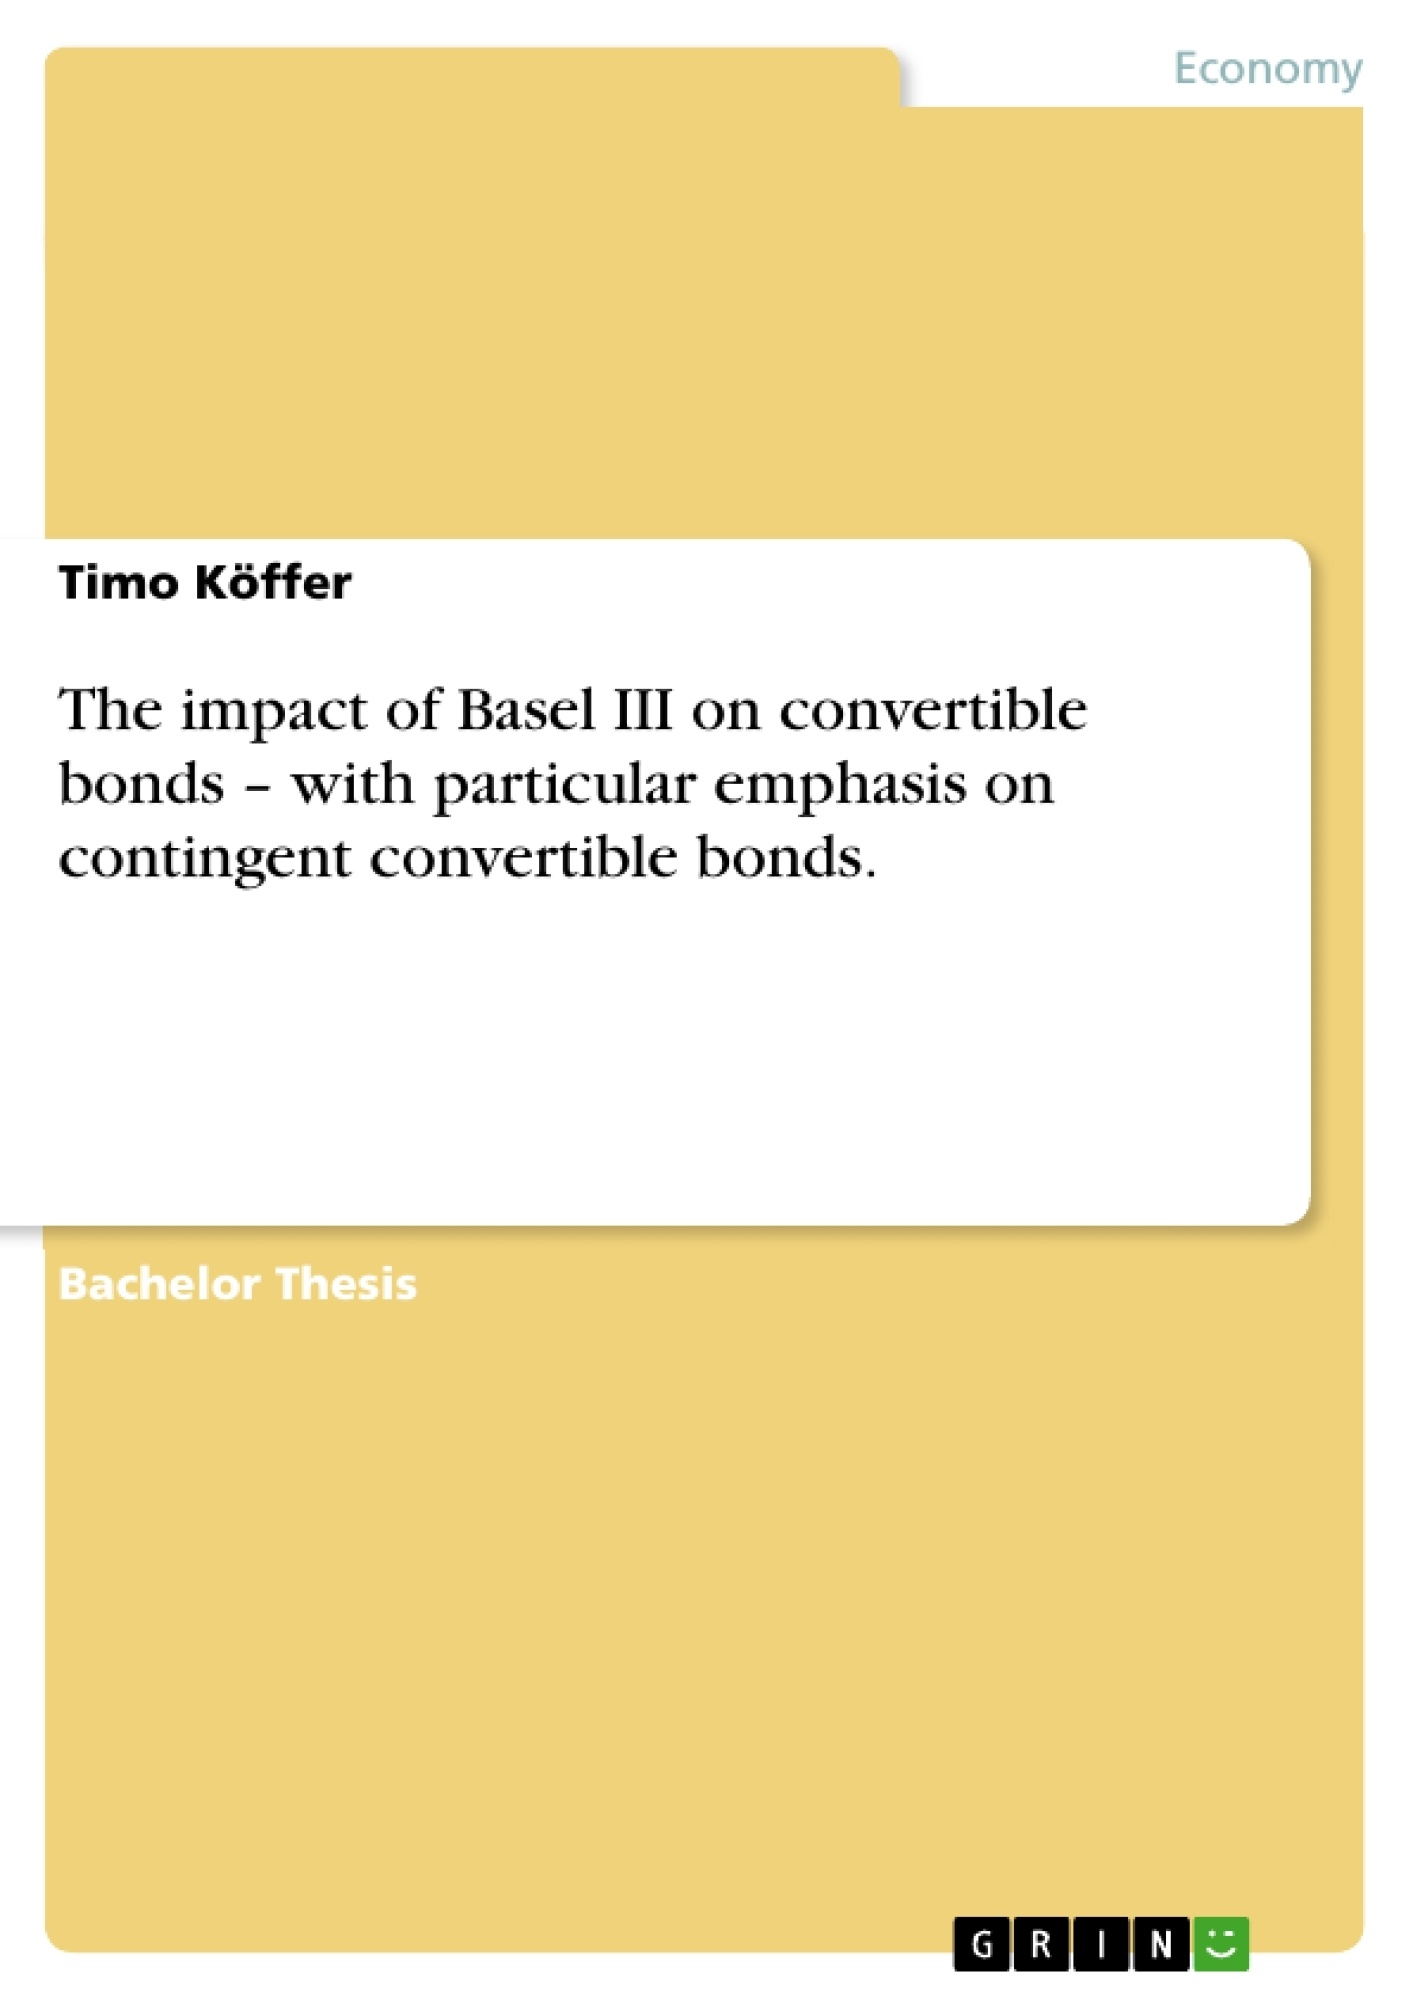 Title: The impact of Basel III on convertible bonds – with particular emphasis on contingent convertible bonds.